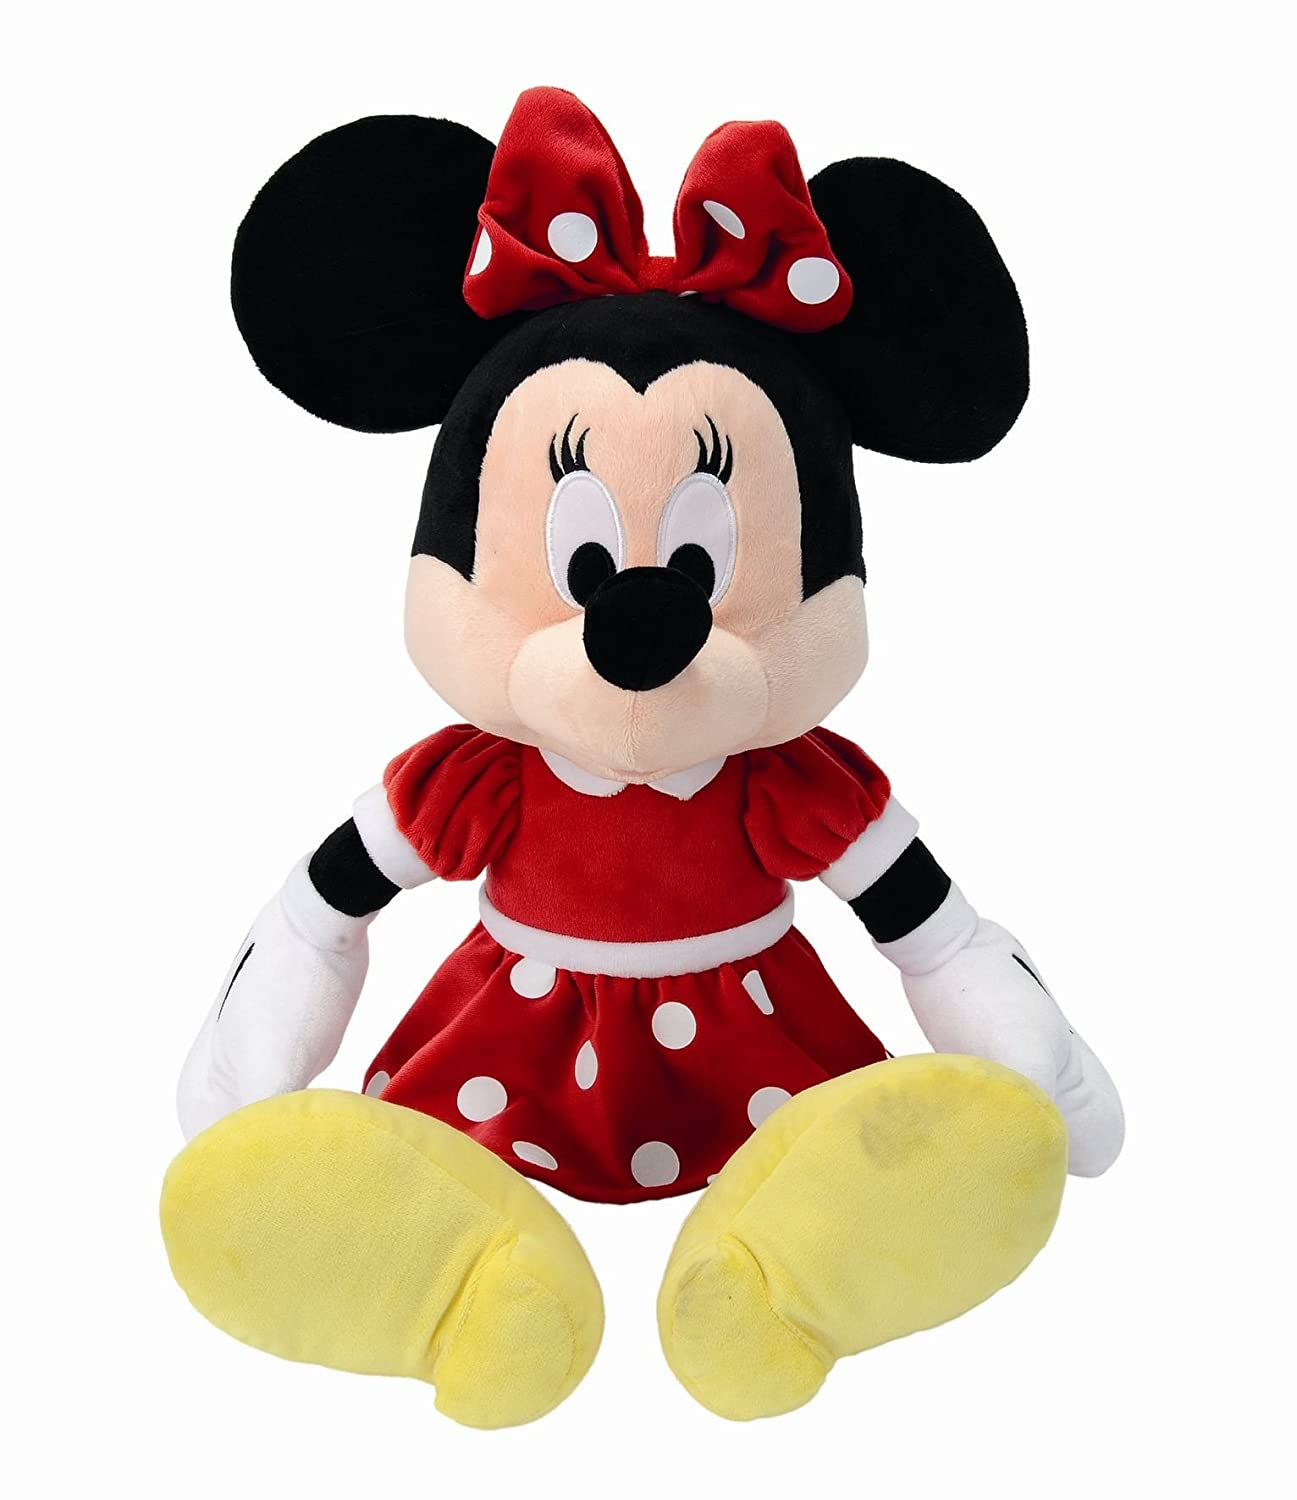 Amazon.com: Simba 6315878983 - Disney Minnie Red Dress Collection, 50 cm by Simba Toys: Toys & Games